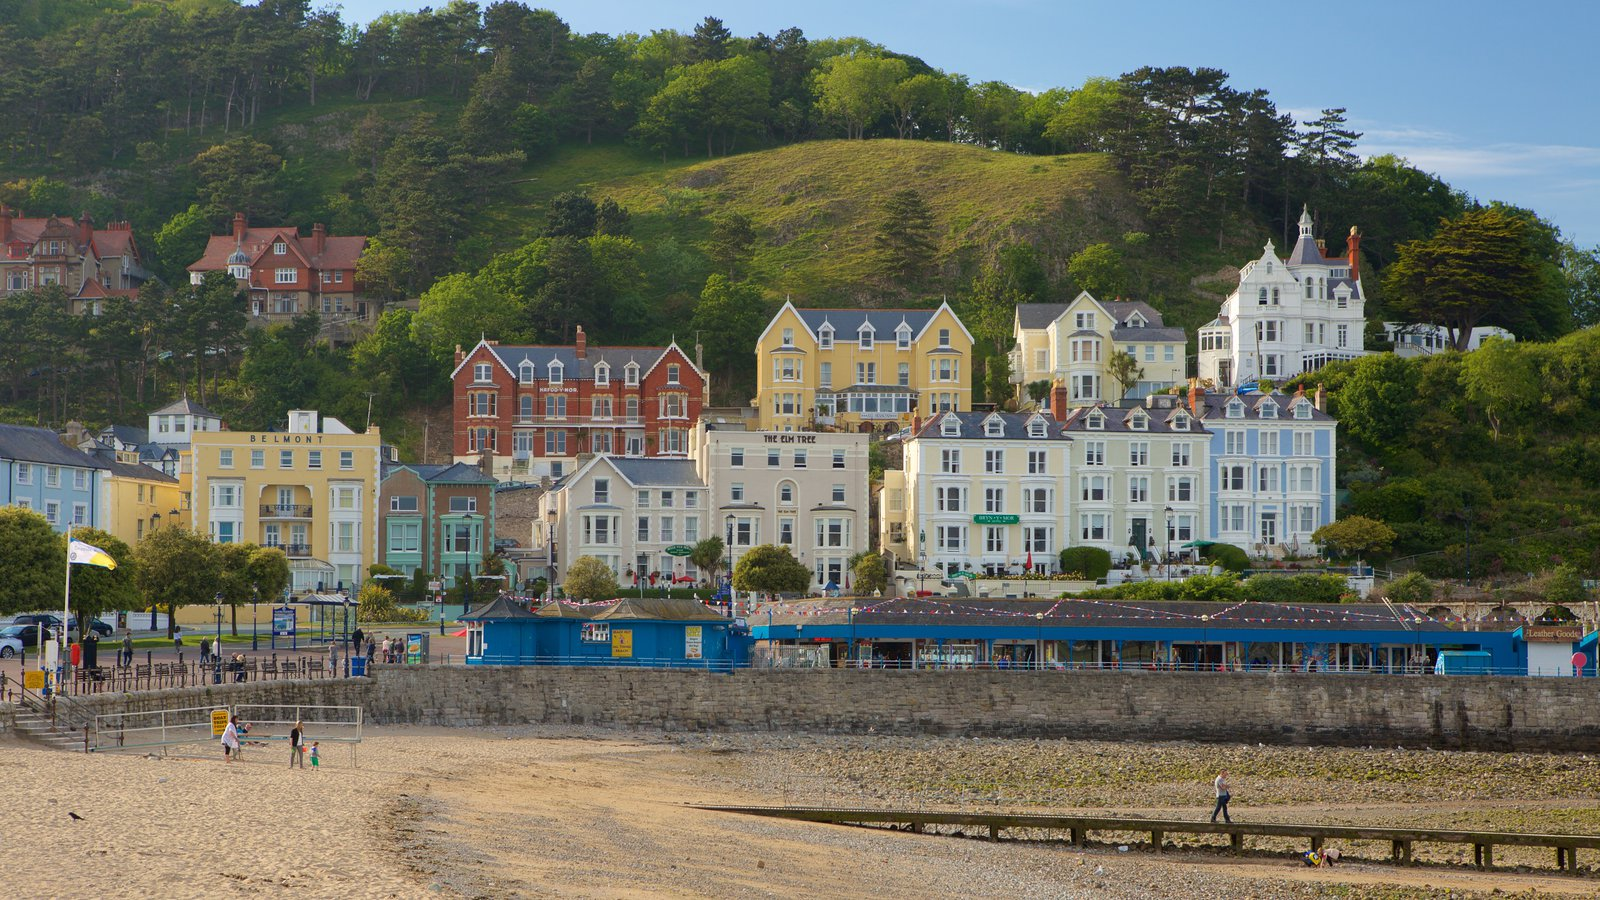 Llandudno showing a small town or village and a pebble beach